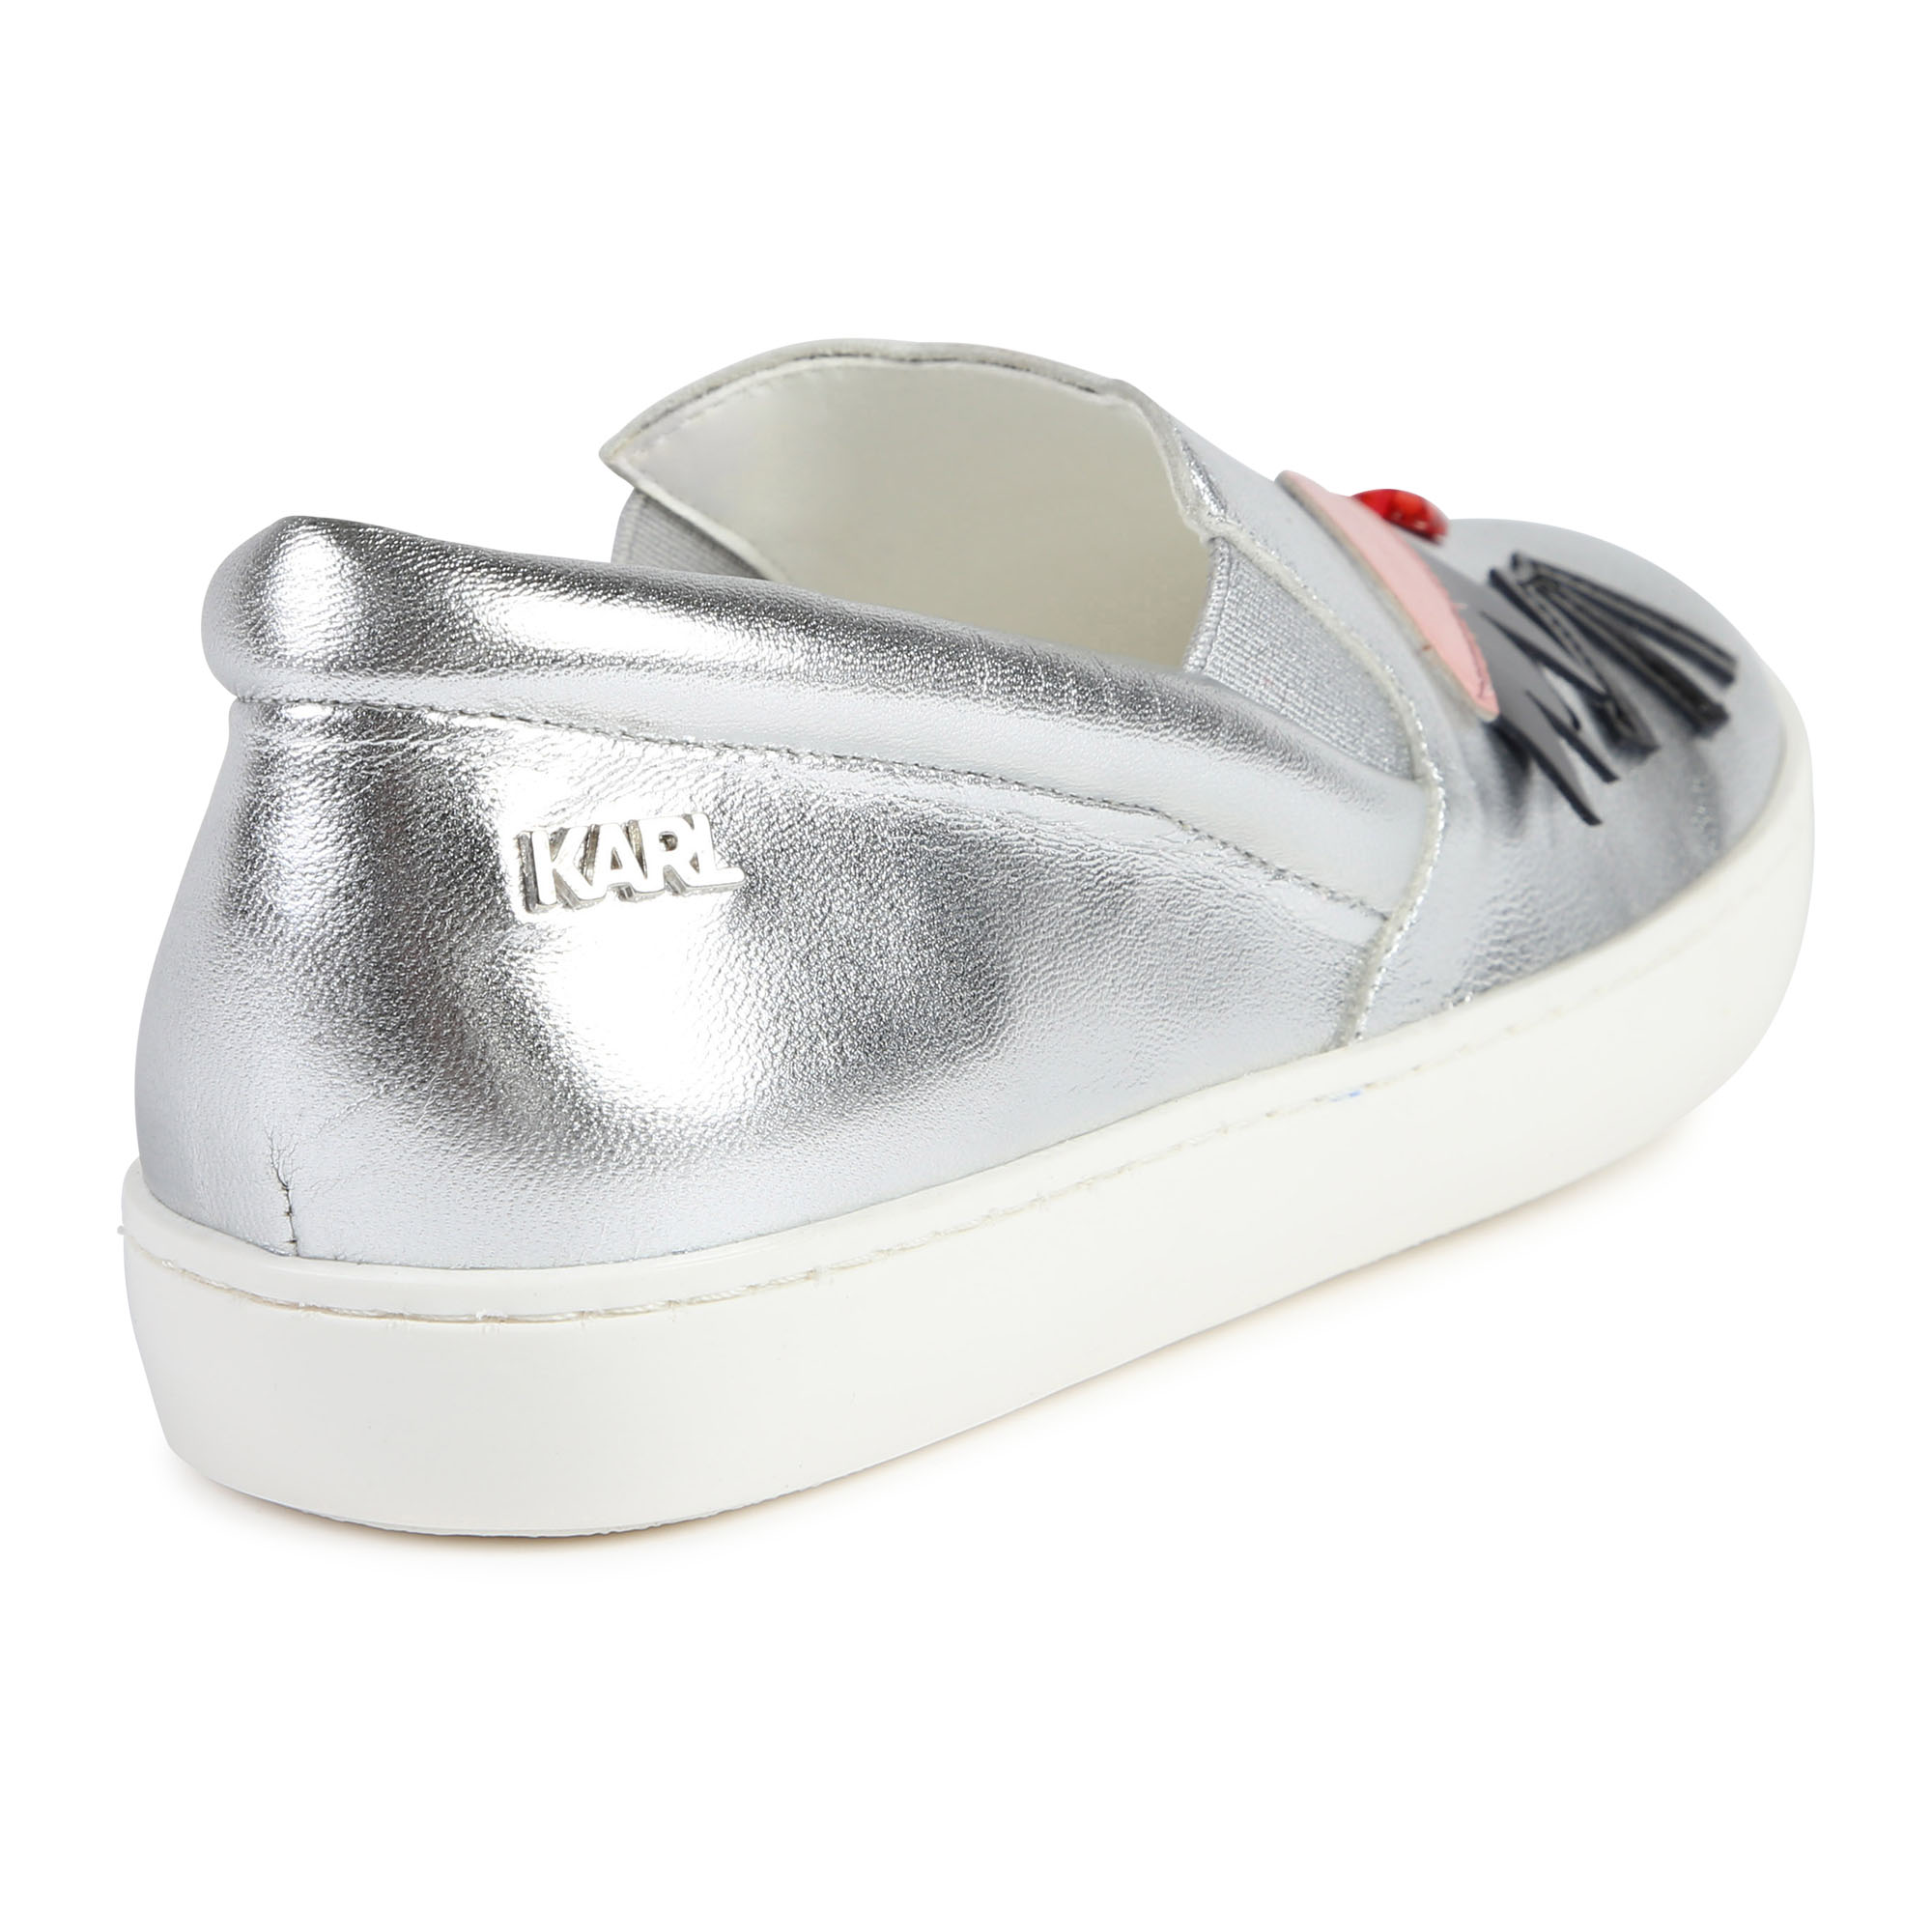 Silver leather shoes KARL LAGERFELD KIDS for GIRL